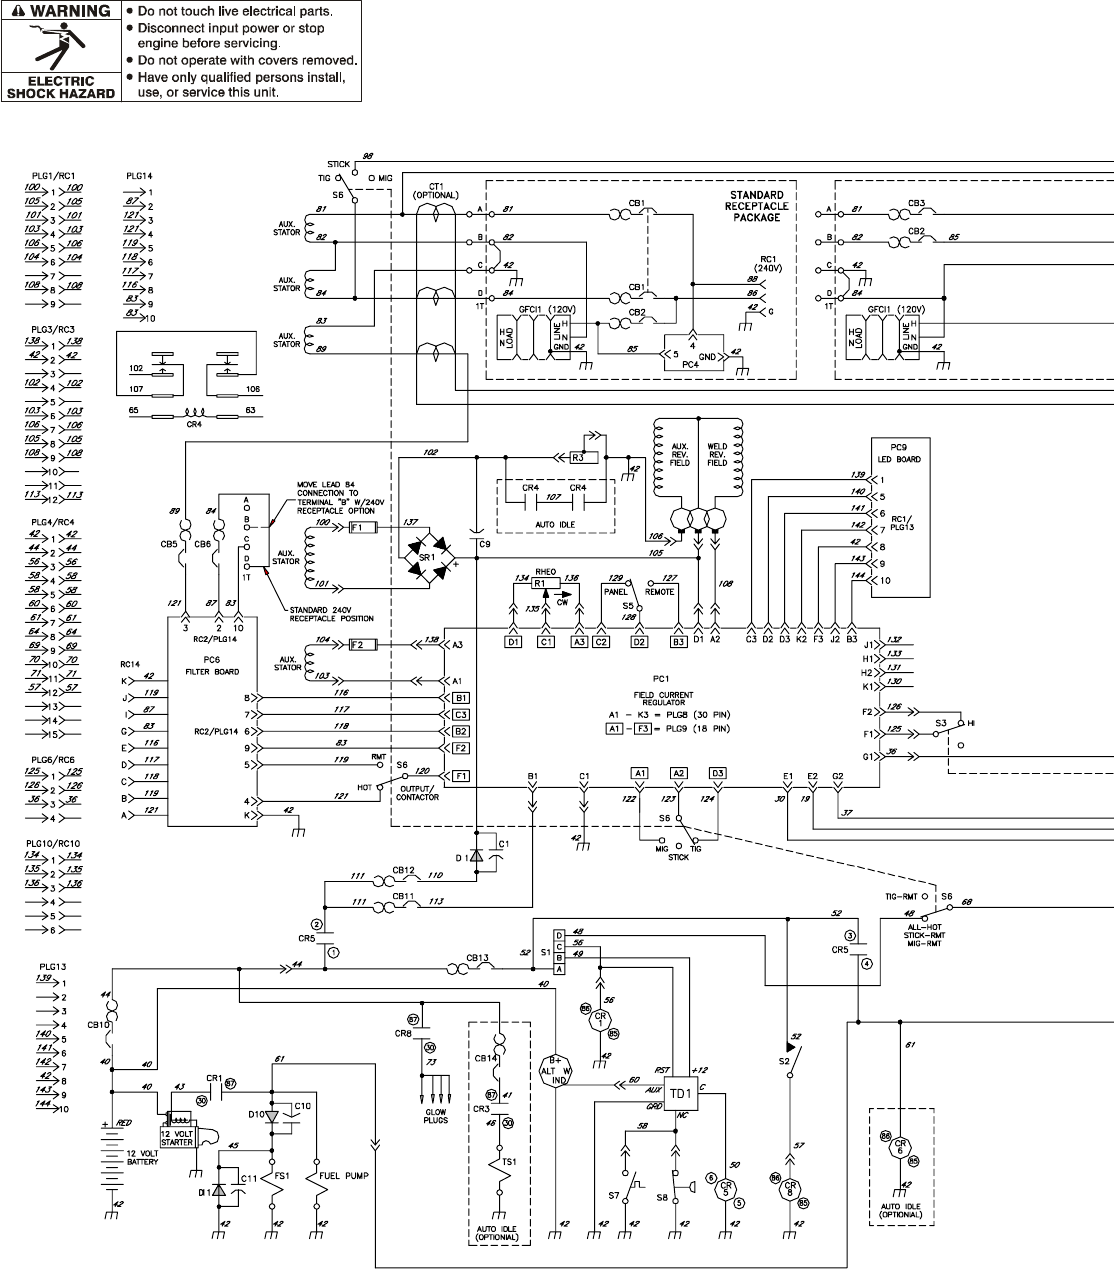 page 62 of miller electric welding system 400p, 500 x user guide Cooper Wiring Diagrams Welder page 62 of miller electric welding system 400p, 500 x user guide manualsonline com cooper wiring diagrams welder